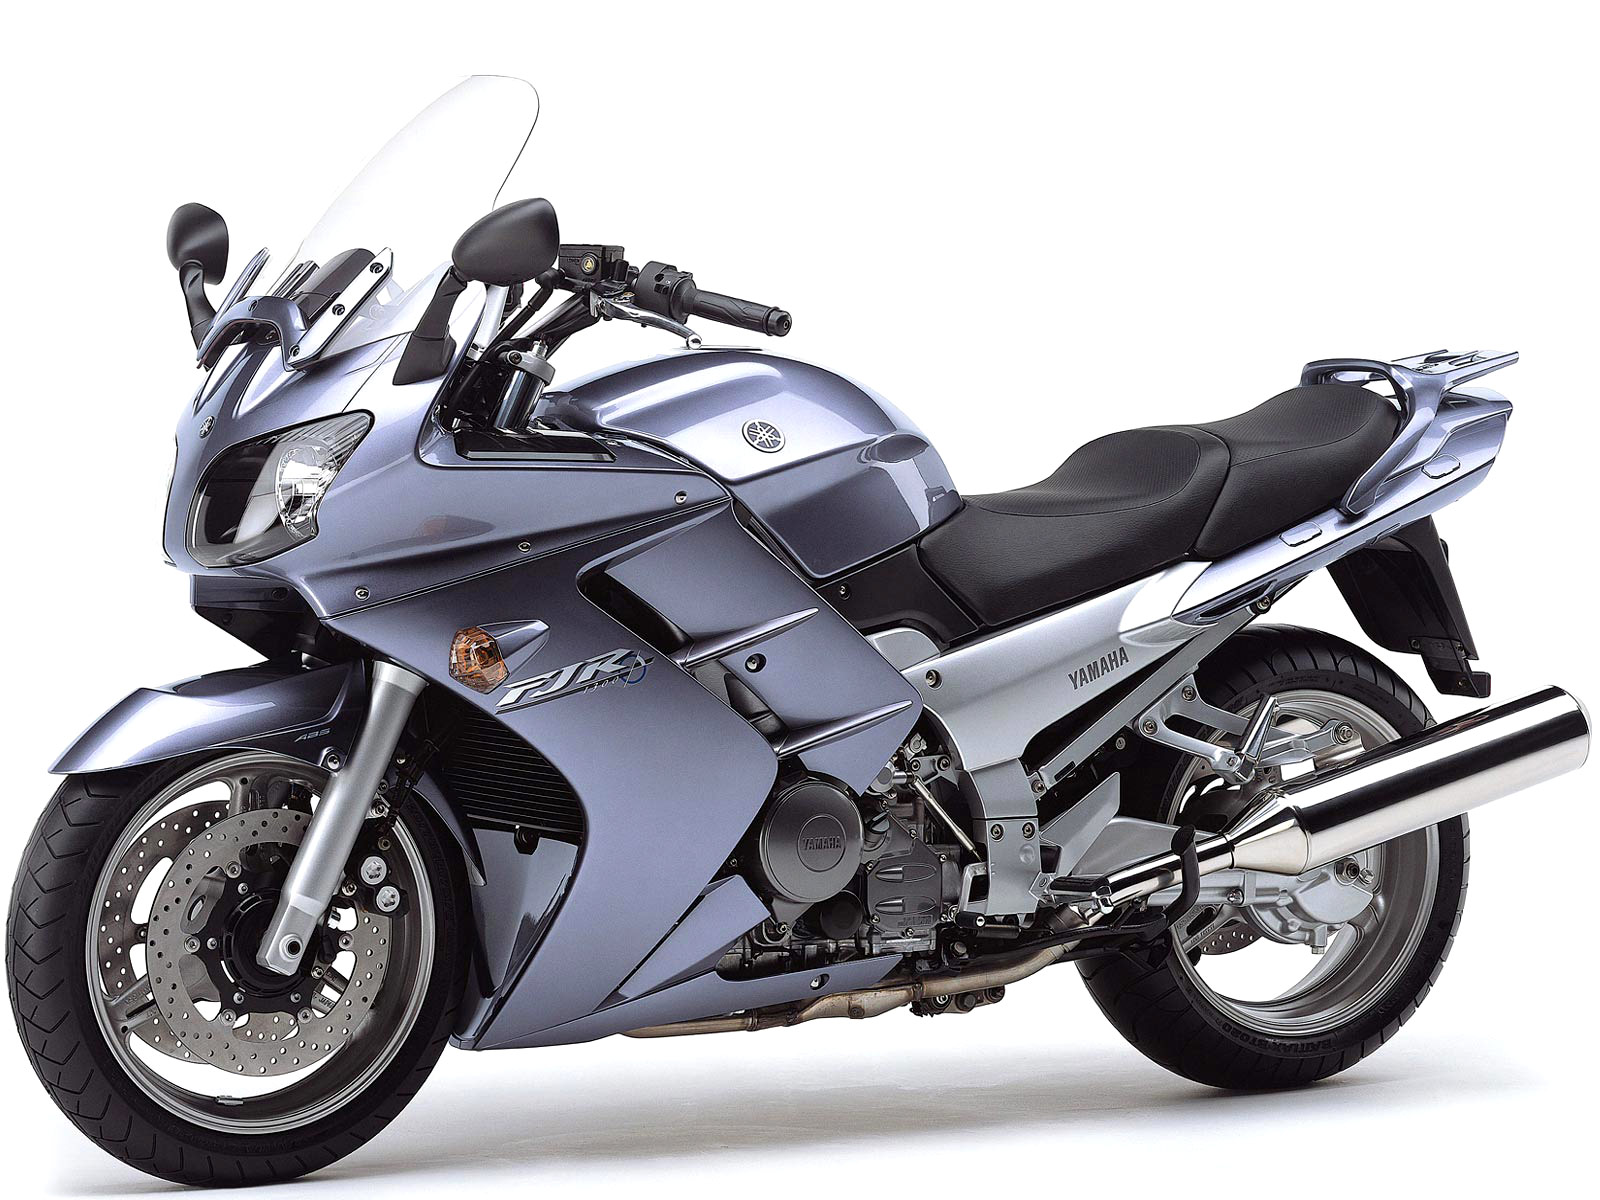 image gallery 2012 yamaha fjr1300. Black Bedroom Furniture Sets. Home Design Ideas